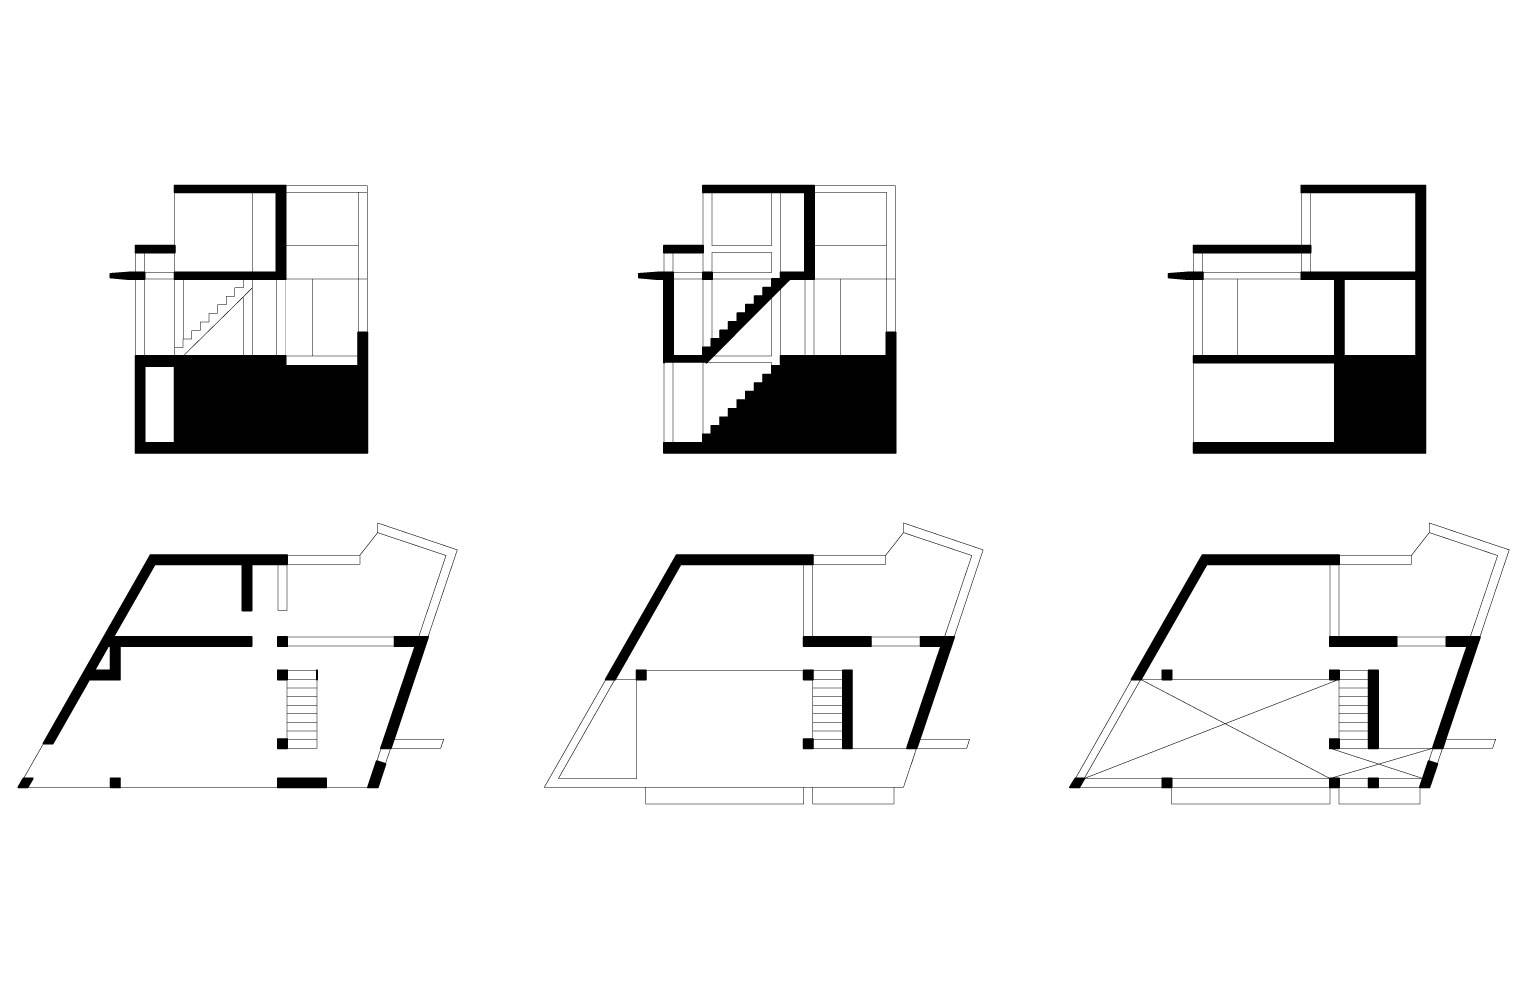 House Rese - Bottom House, Plans & Sections